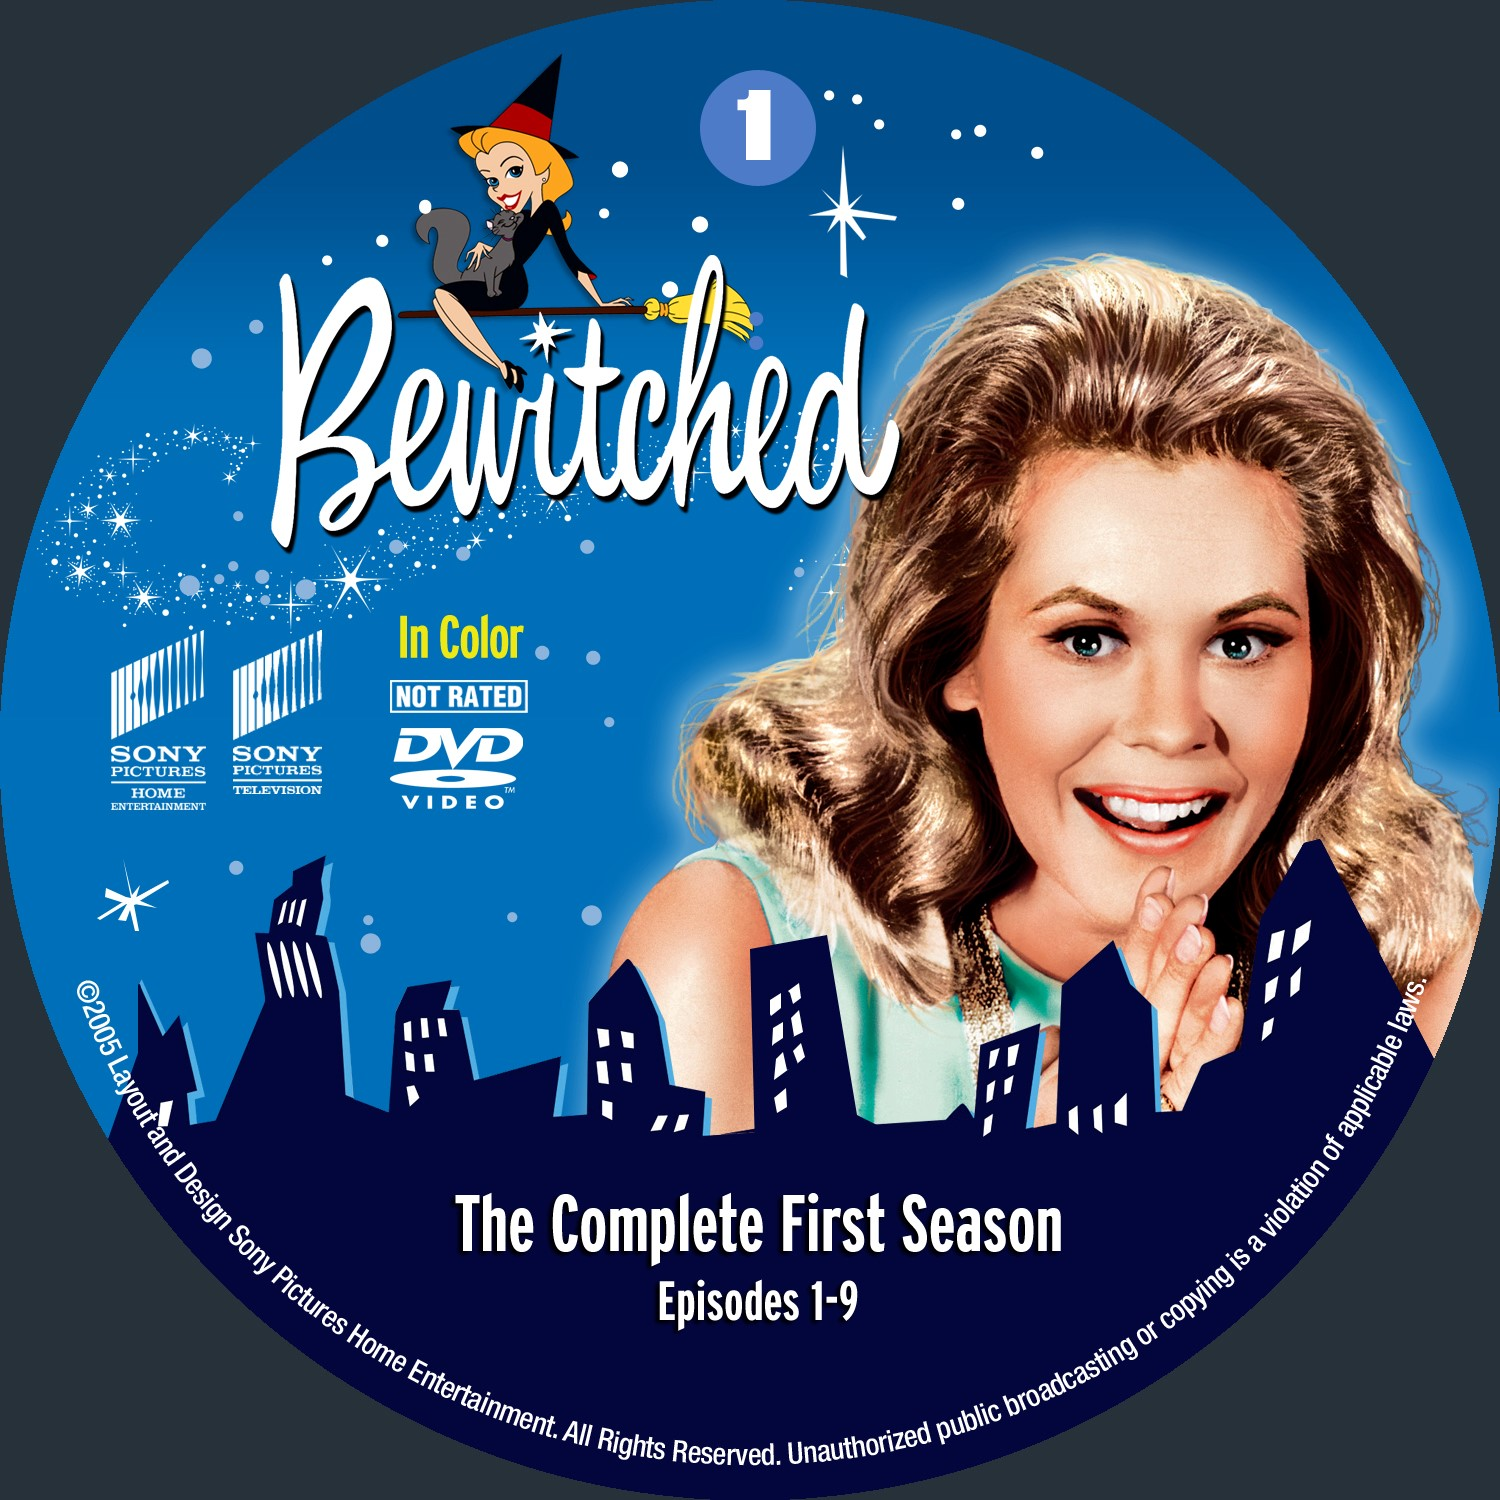 Bewitched Season 1 Disc 1-4 DVD Label